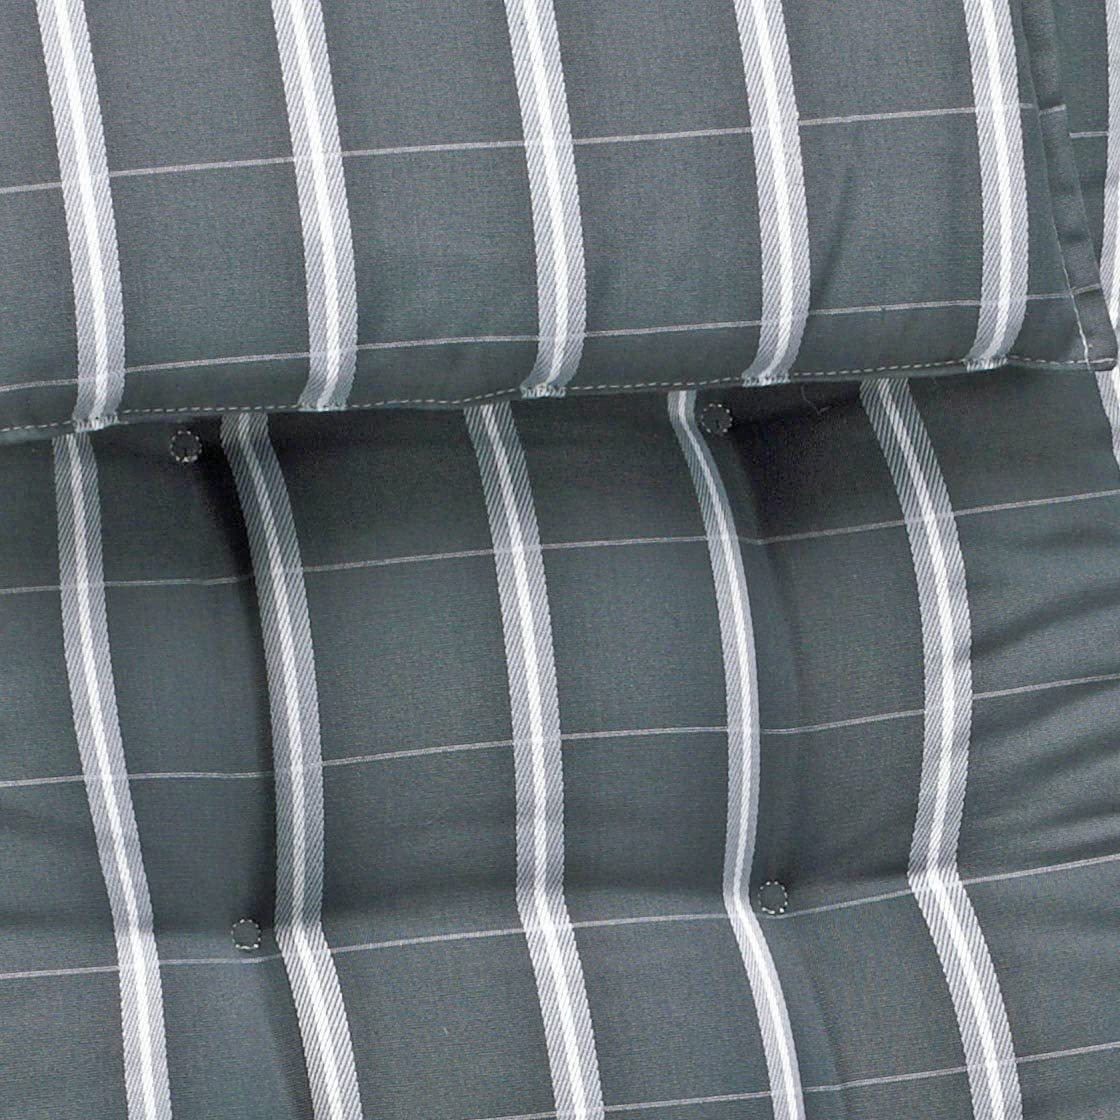 Coussins pour relax chaise longue Chaise Relax fauteuil relax chaise longue relax coussins coussin 1778